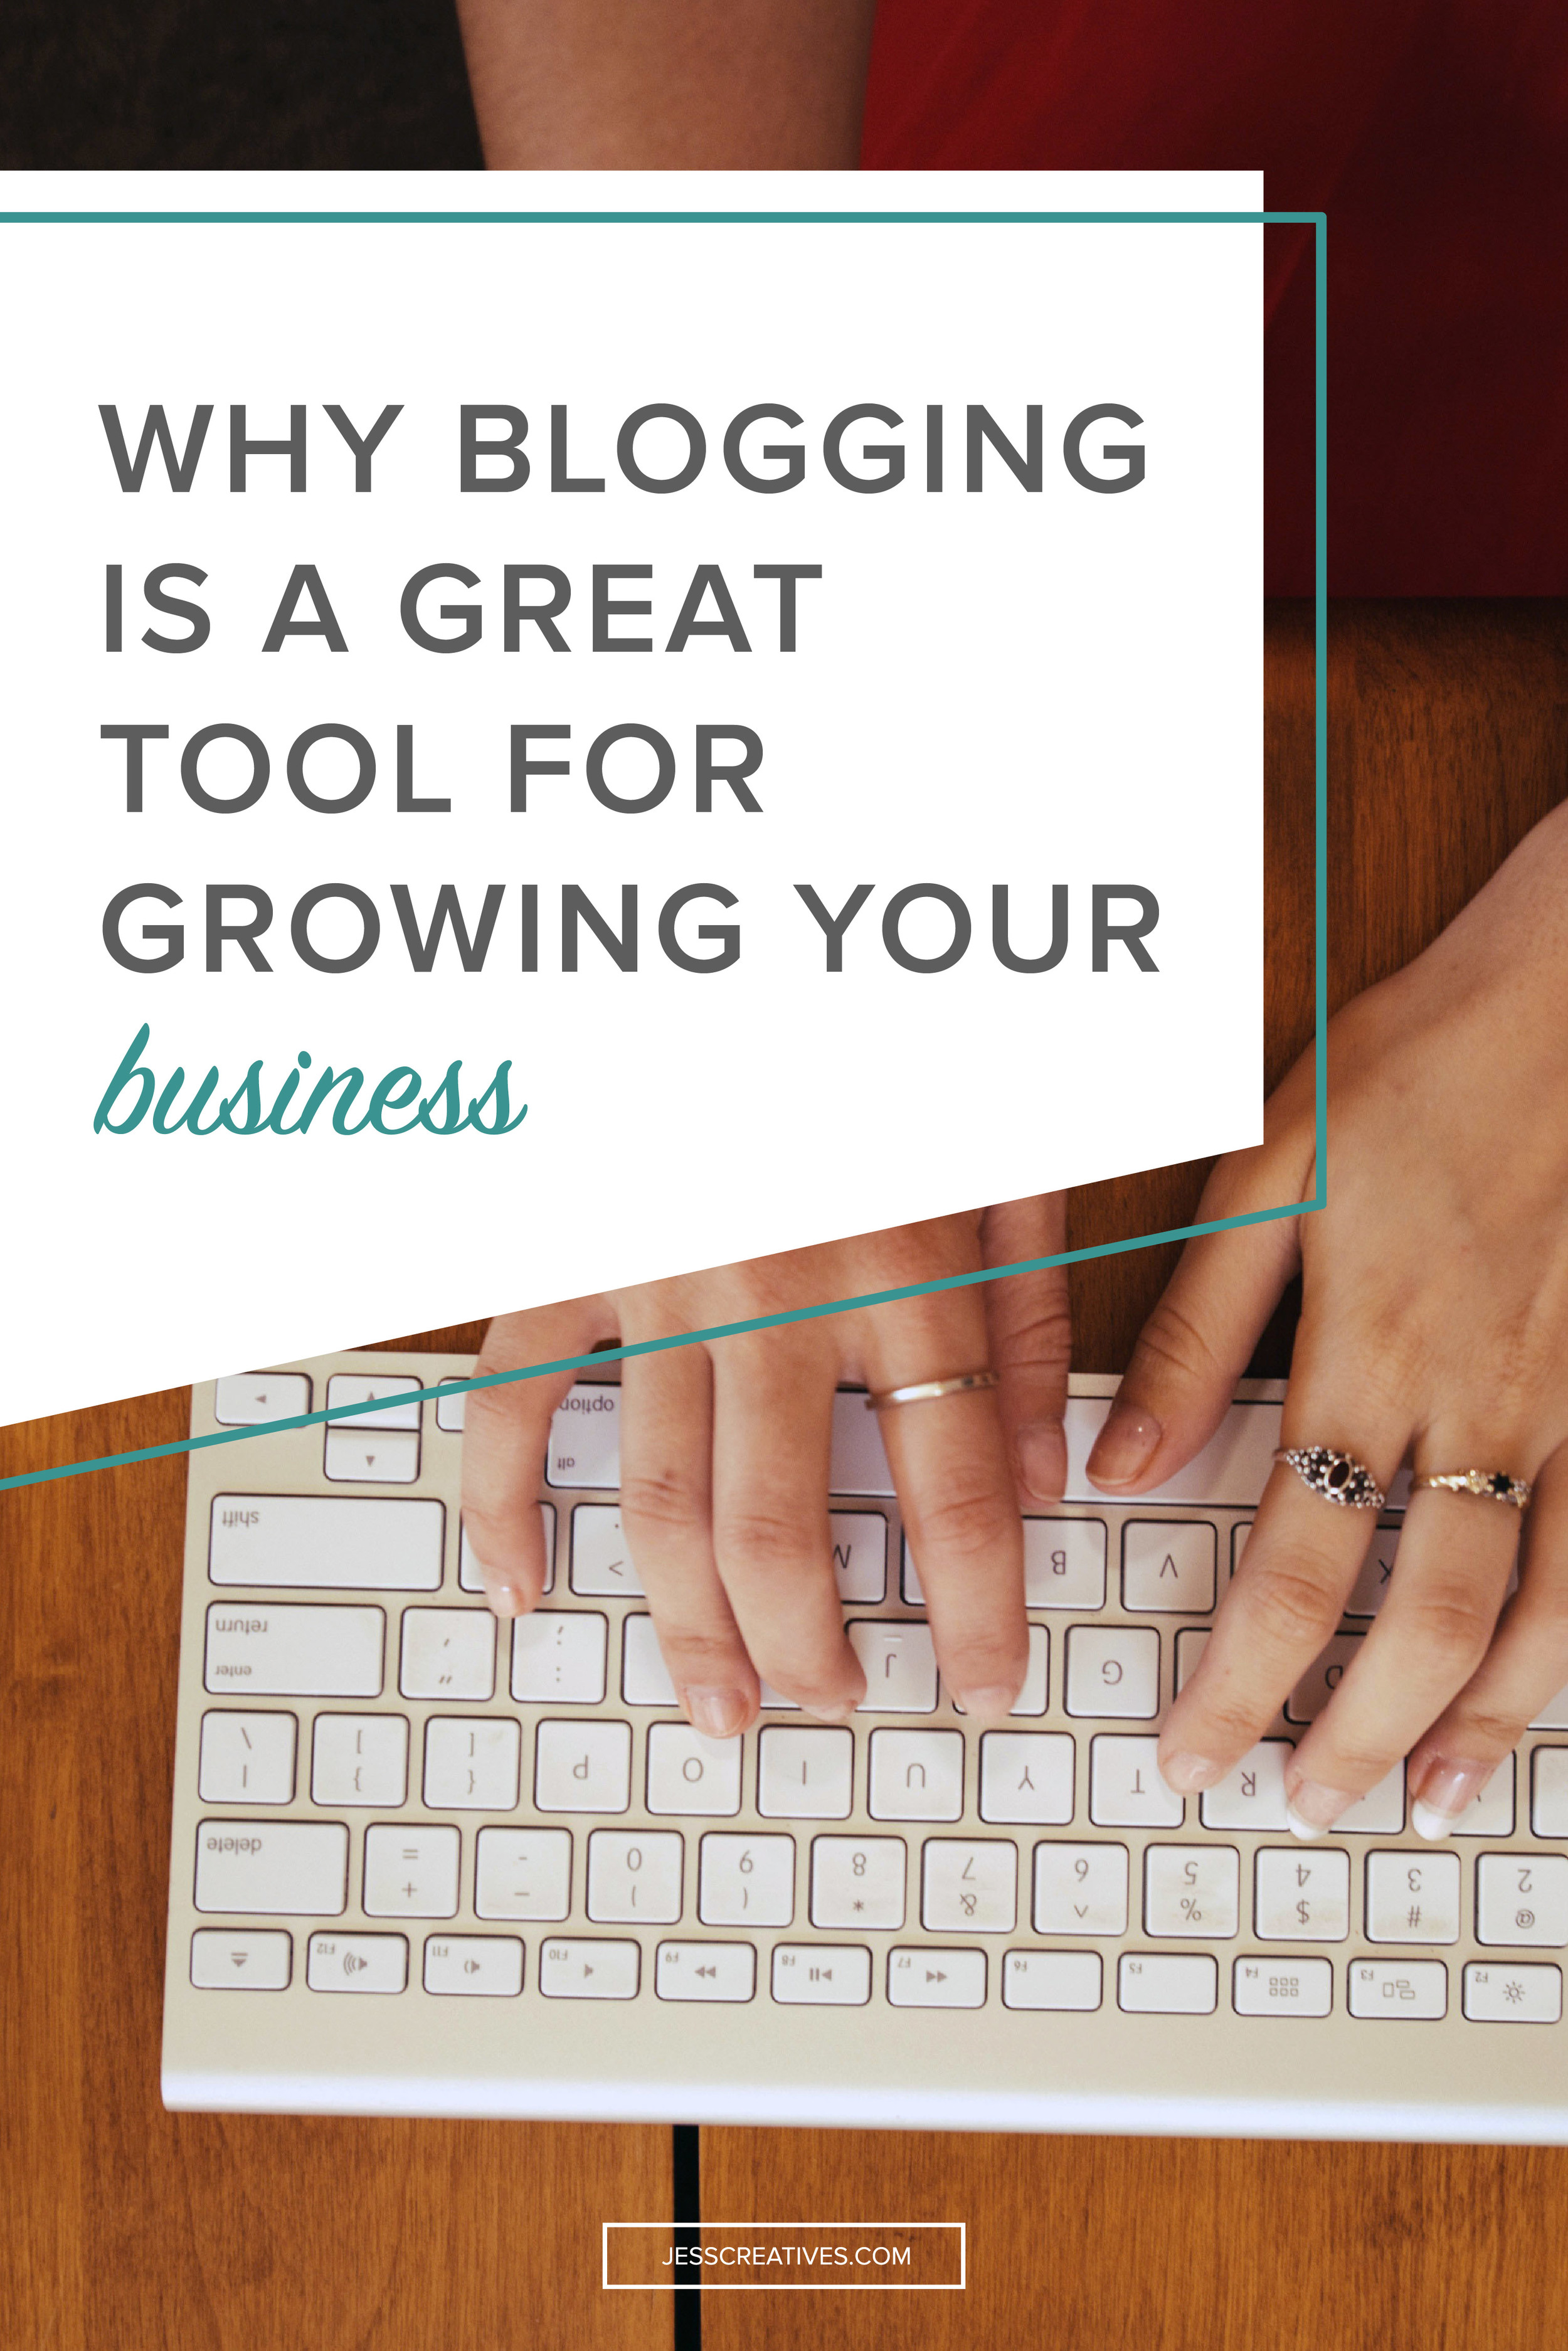 Why blogging is a great tool for your business